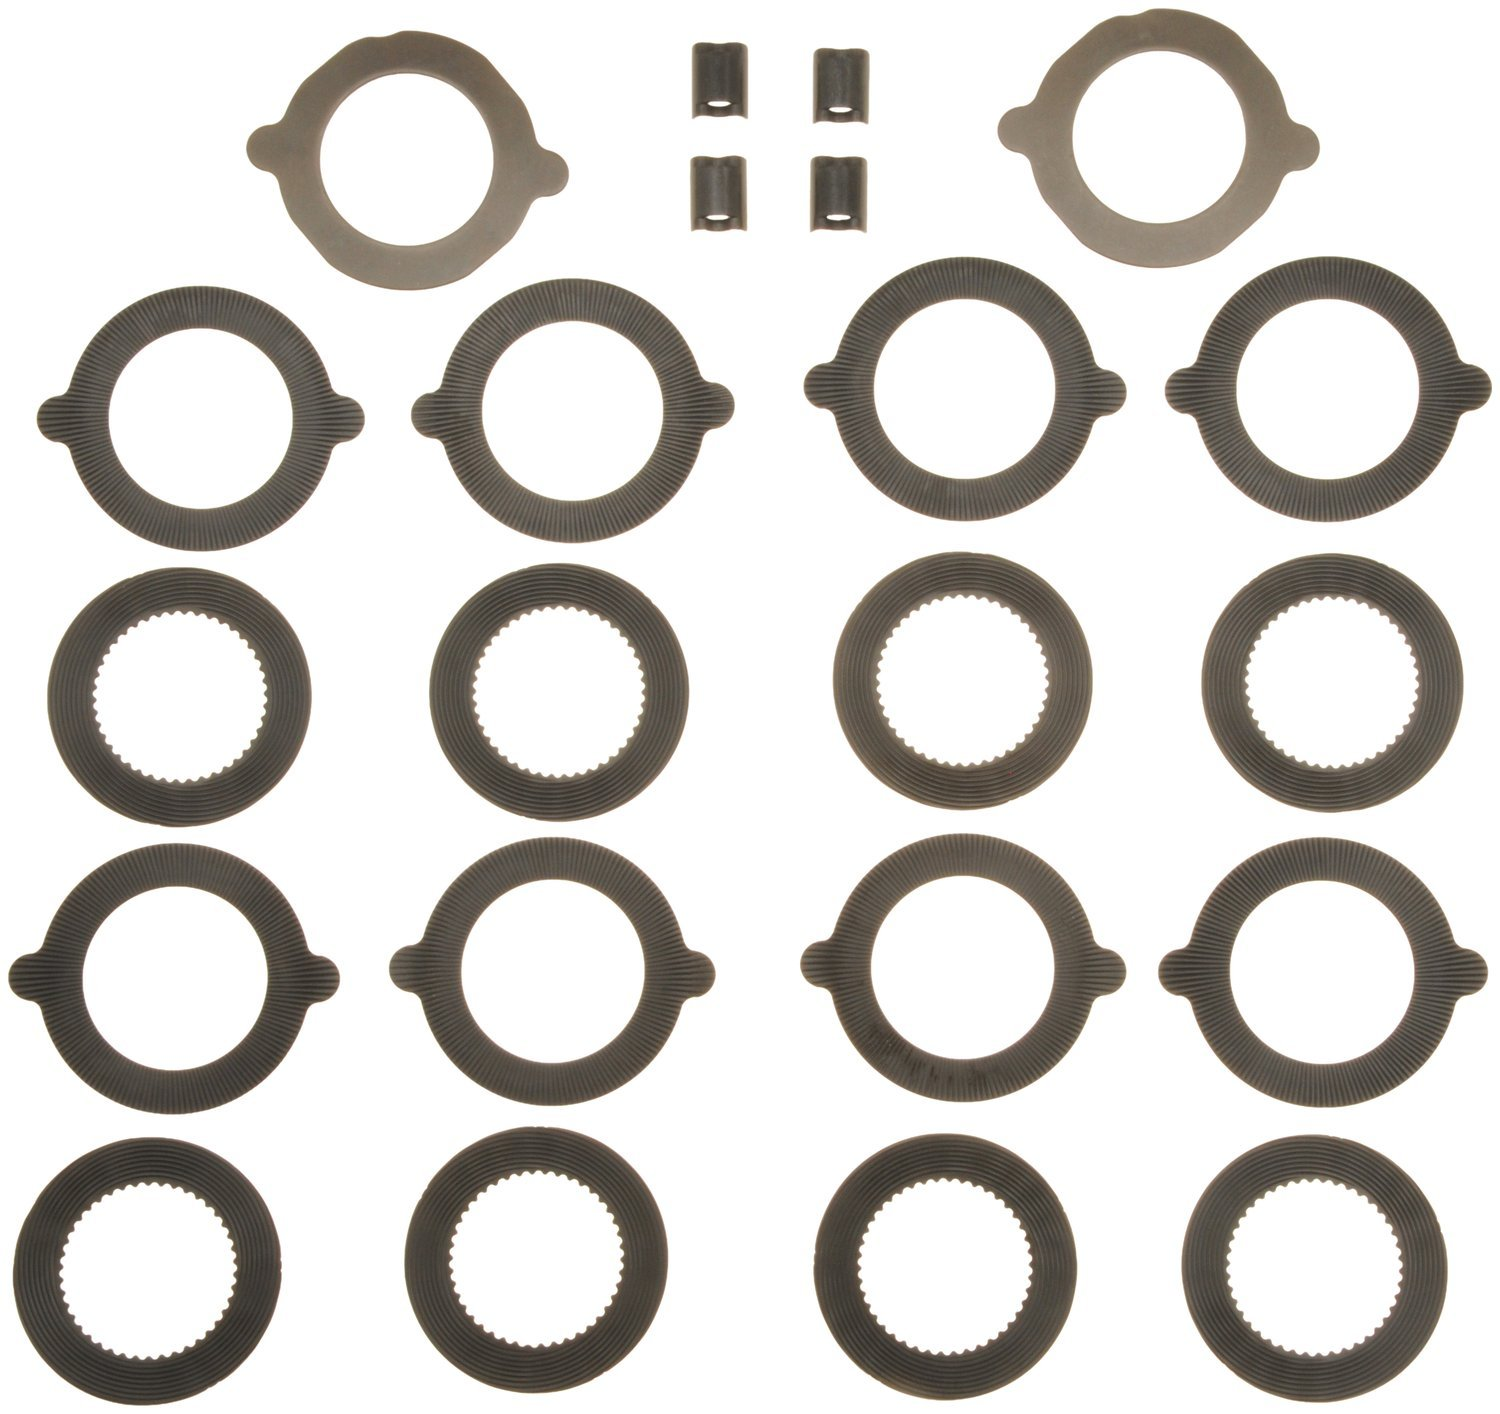 Spicer 708203 Differential Clutch Pack